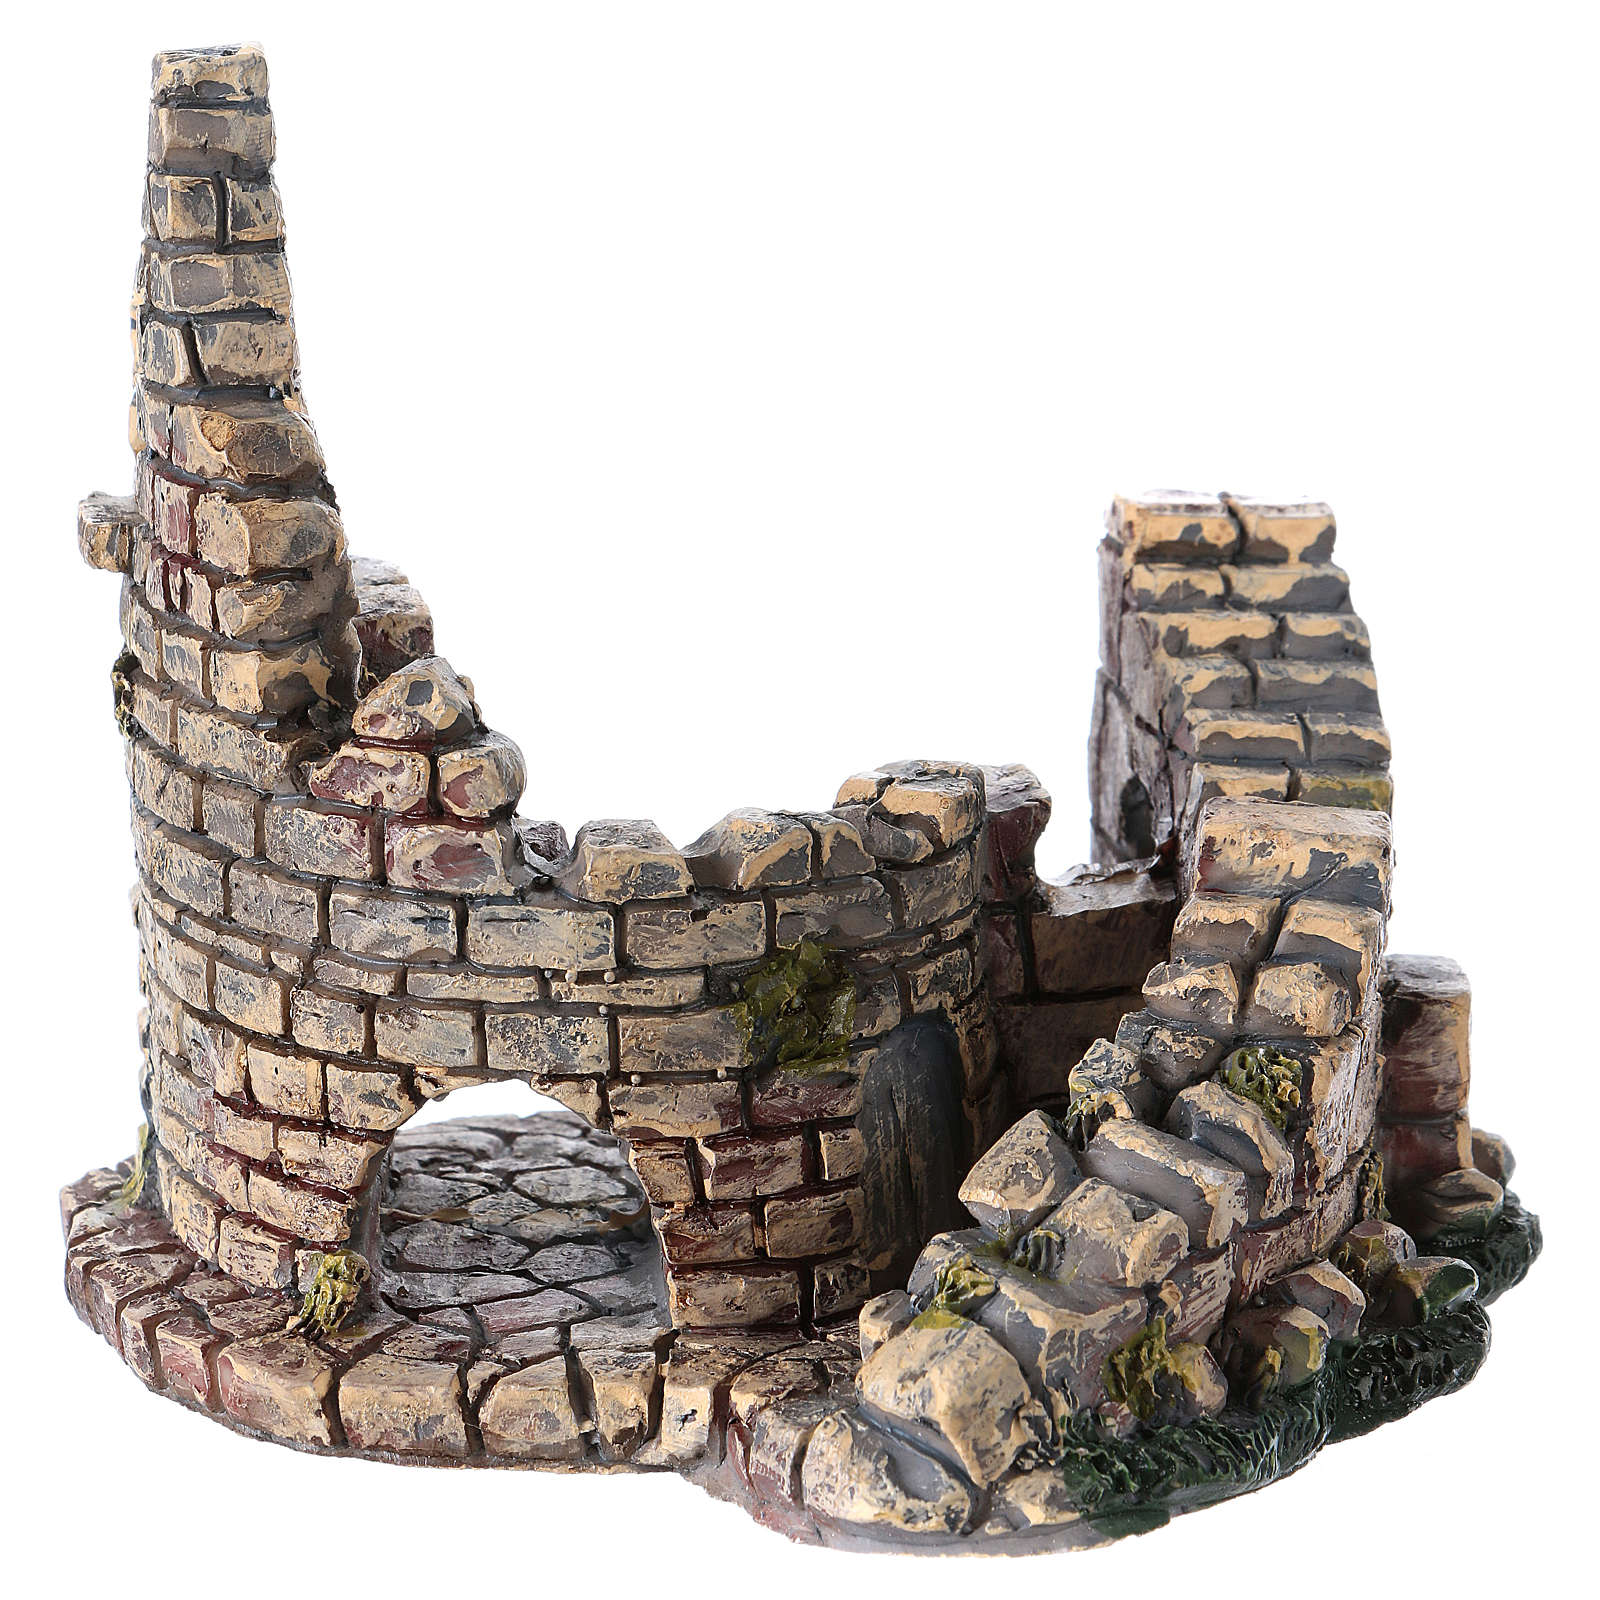 Crumbling Stone Tower 11x10x10 cm Resin for Nativity 4